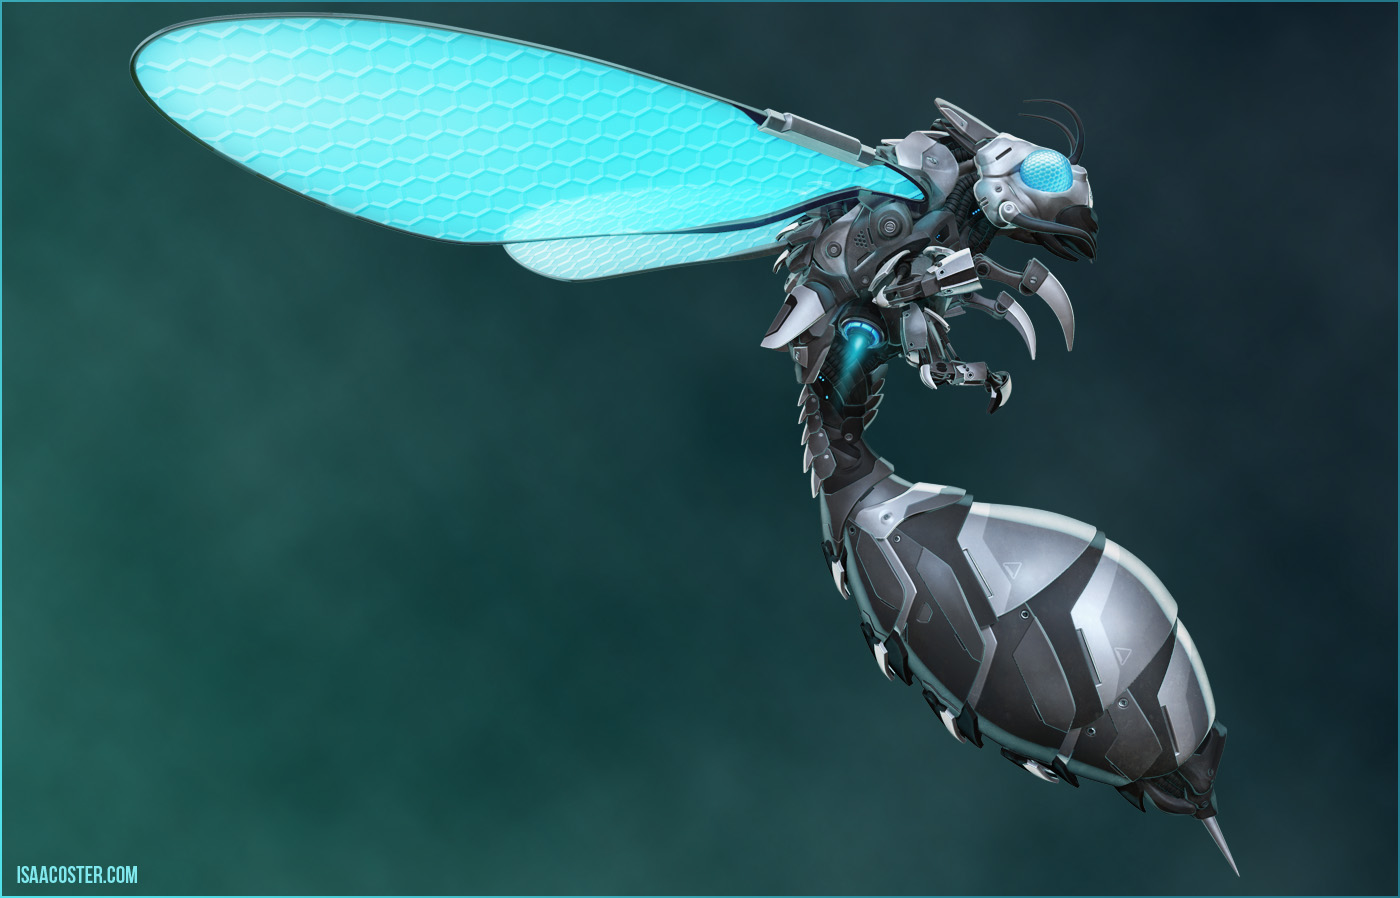 zbrush_wasp_hard_surface_isaac_oster_side_02